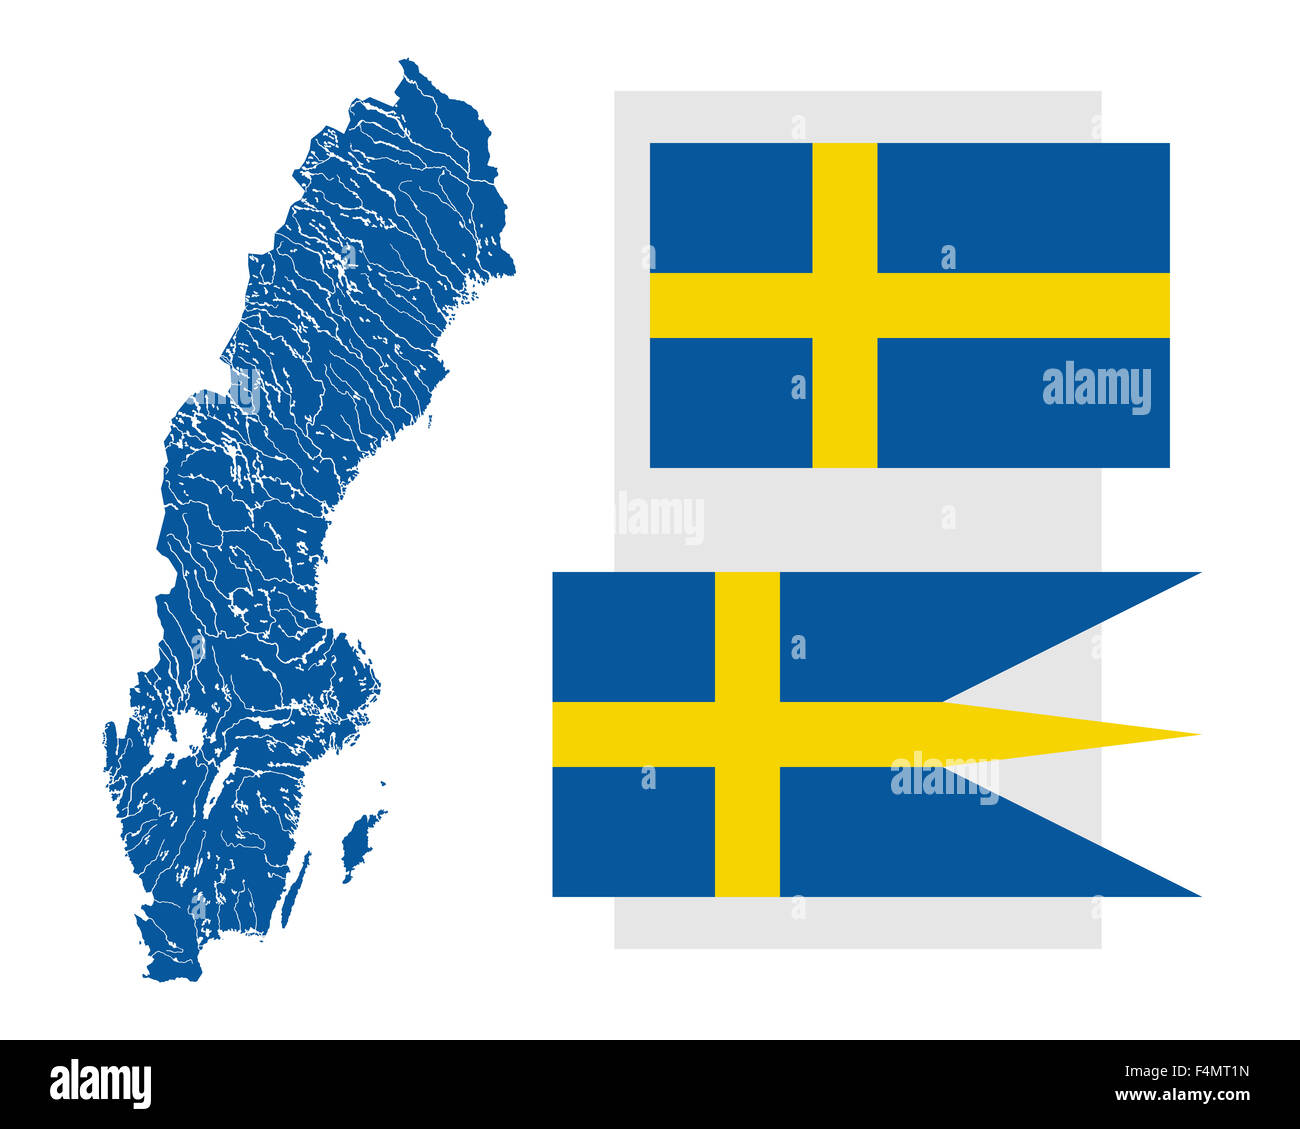 Very detailed map of Sweden in colors of the Swedish flag with lakes rivers and two Swedish flags. - Stock Image